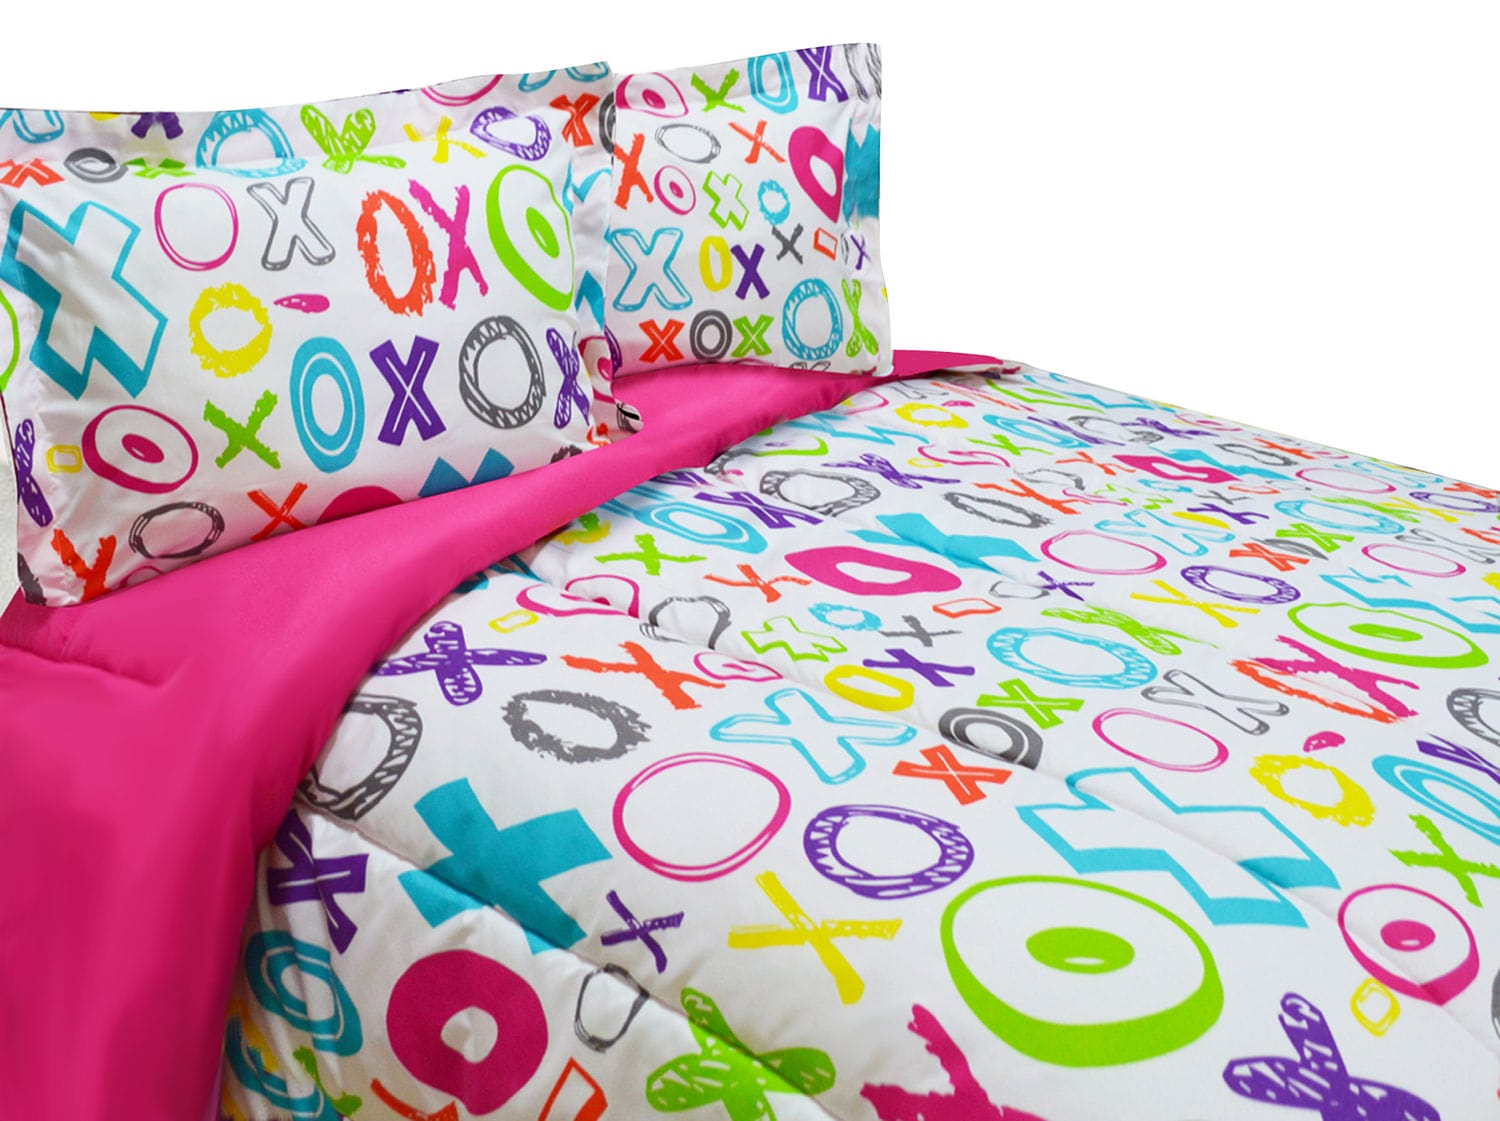 Mattresses and Bedding - XOXO 2-Piece Twin Comforter Set